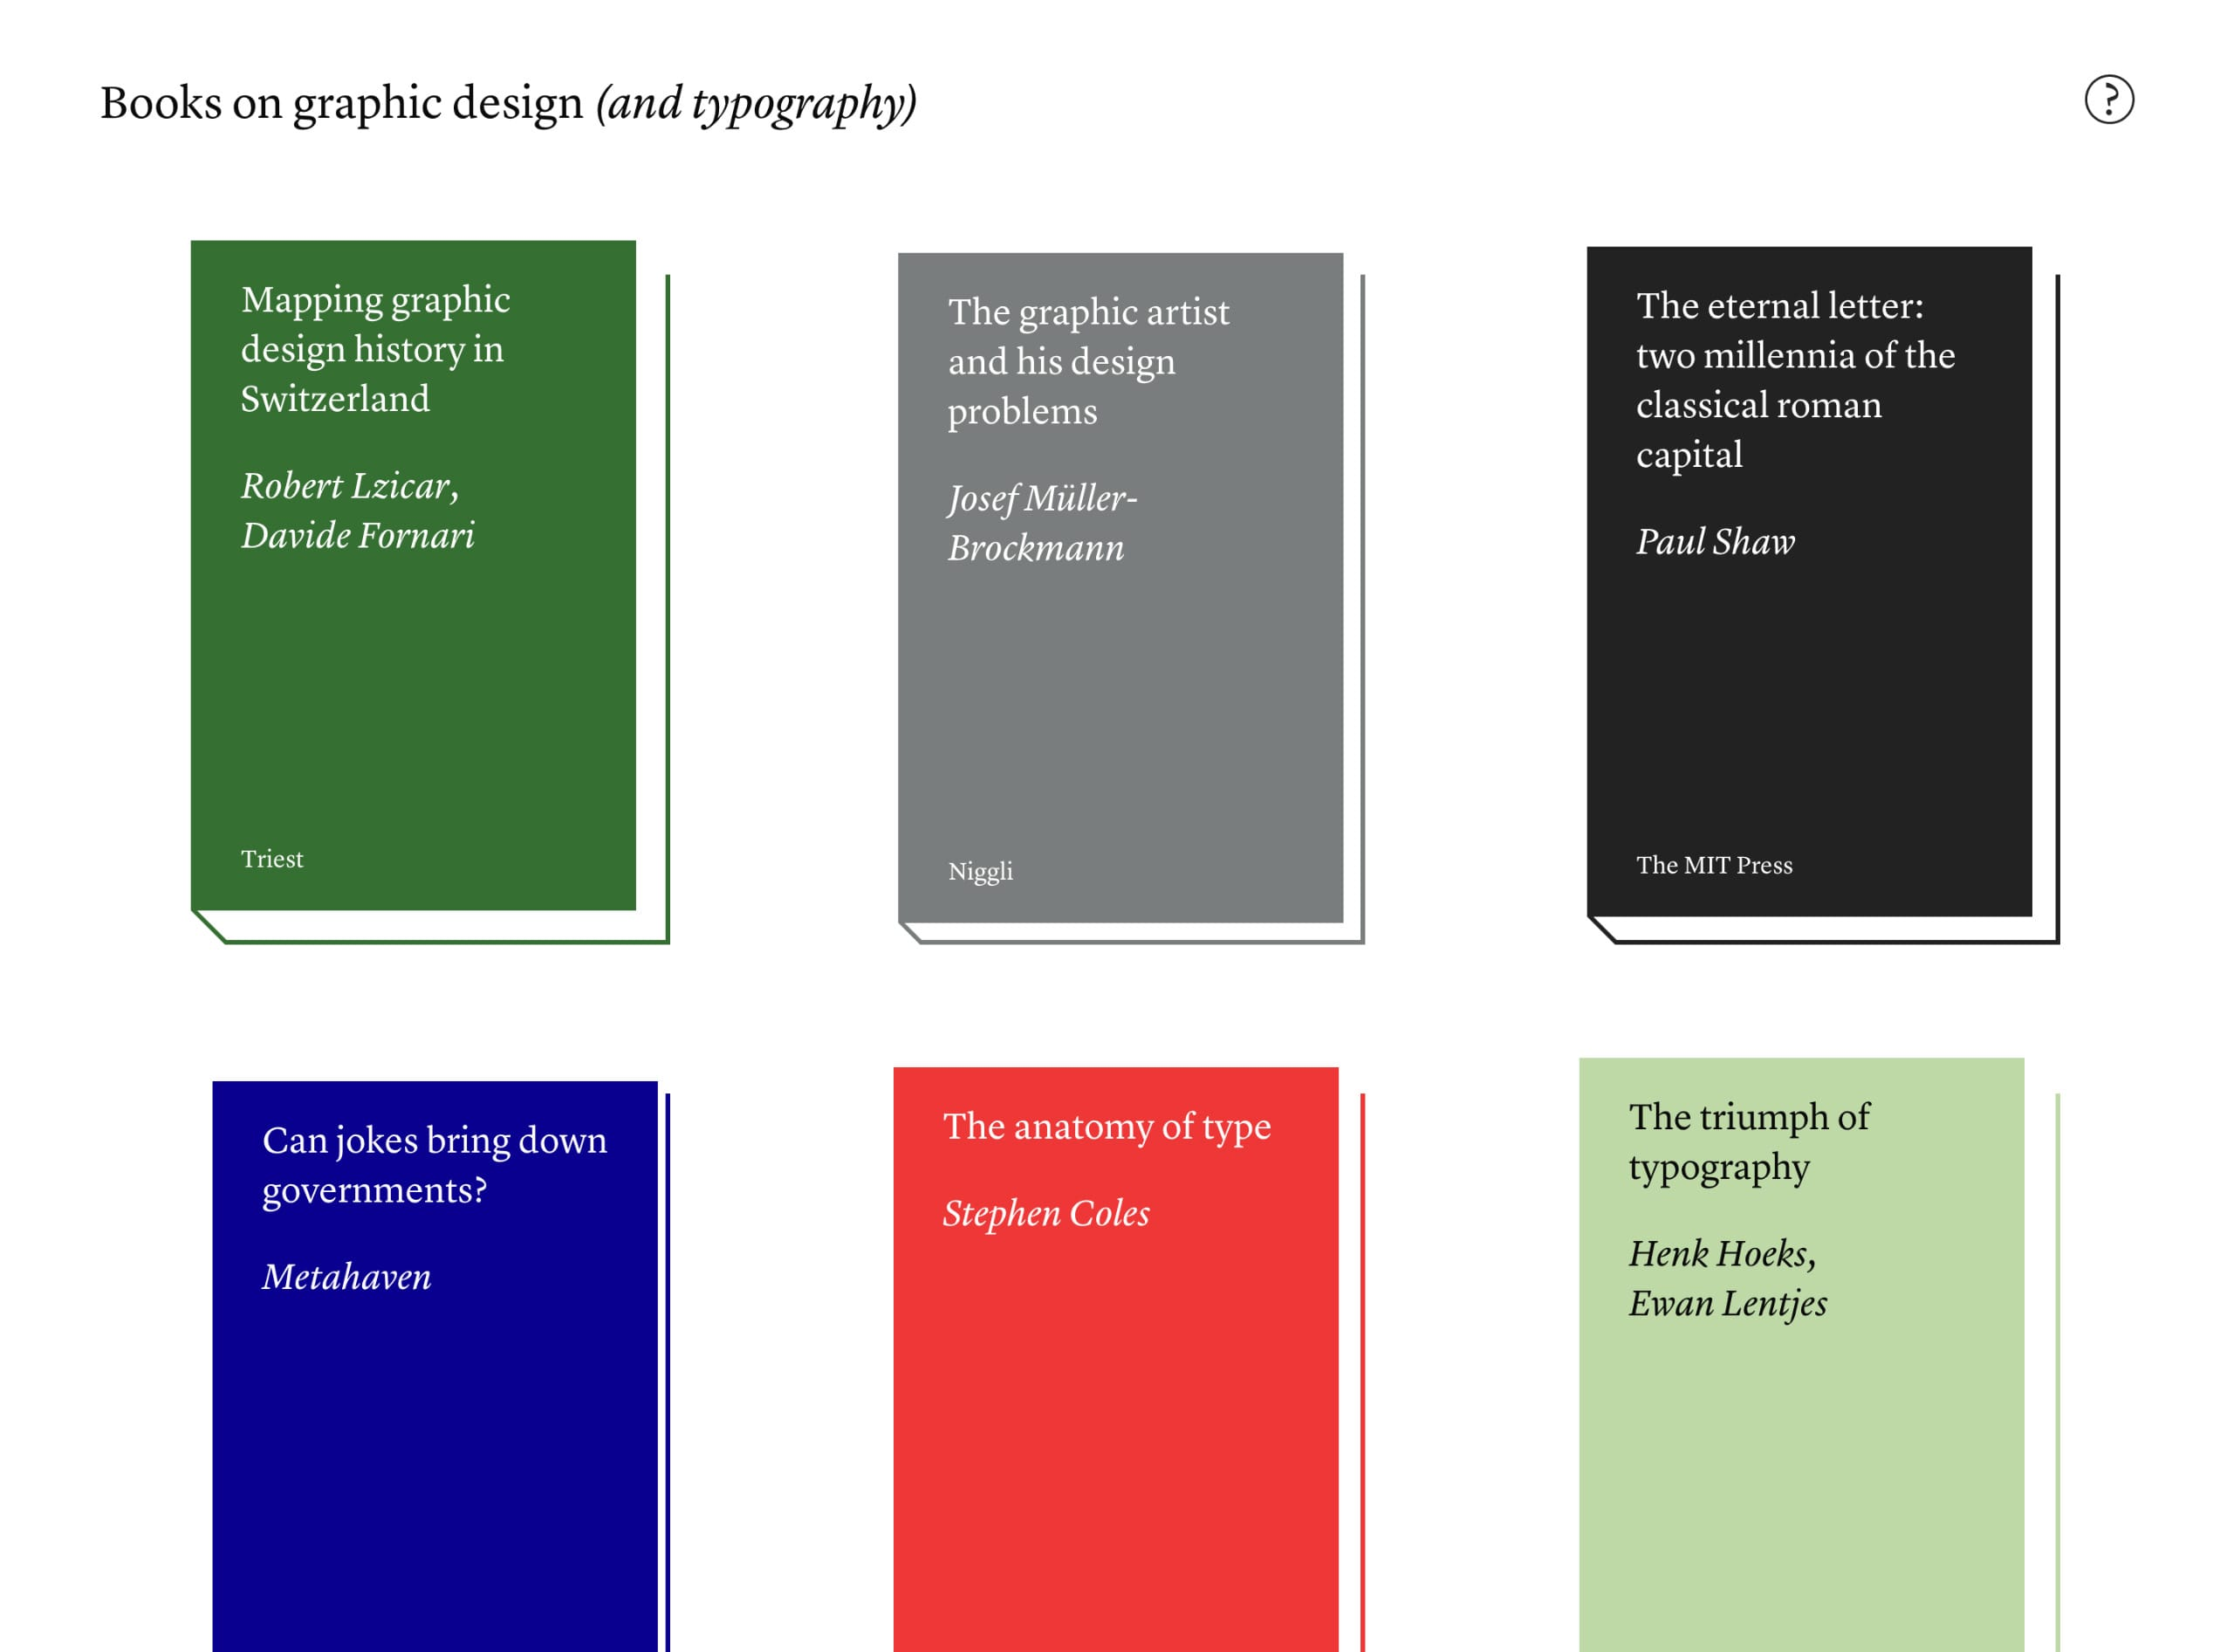 Books on graphic design Website Screenshot